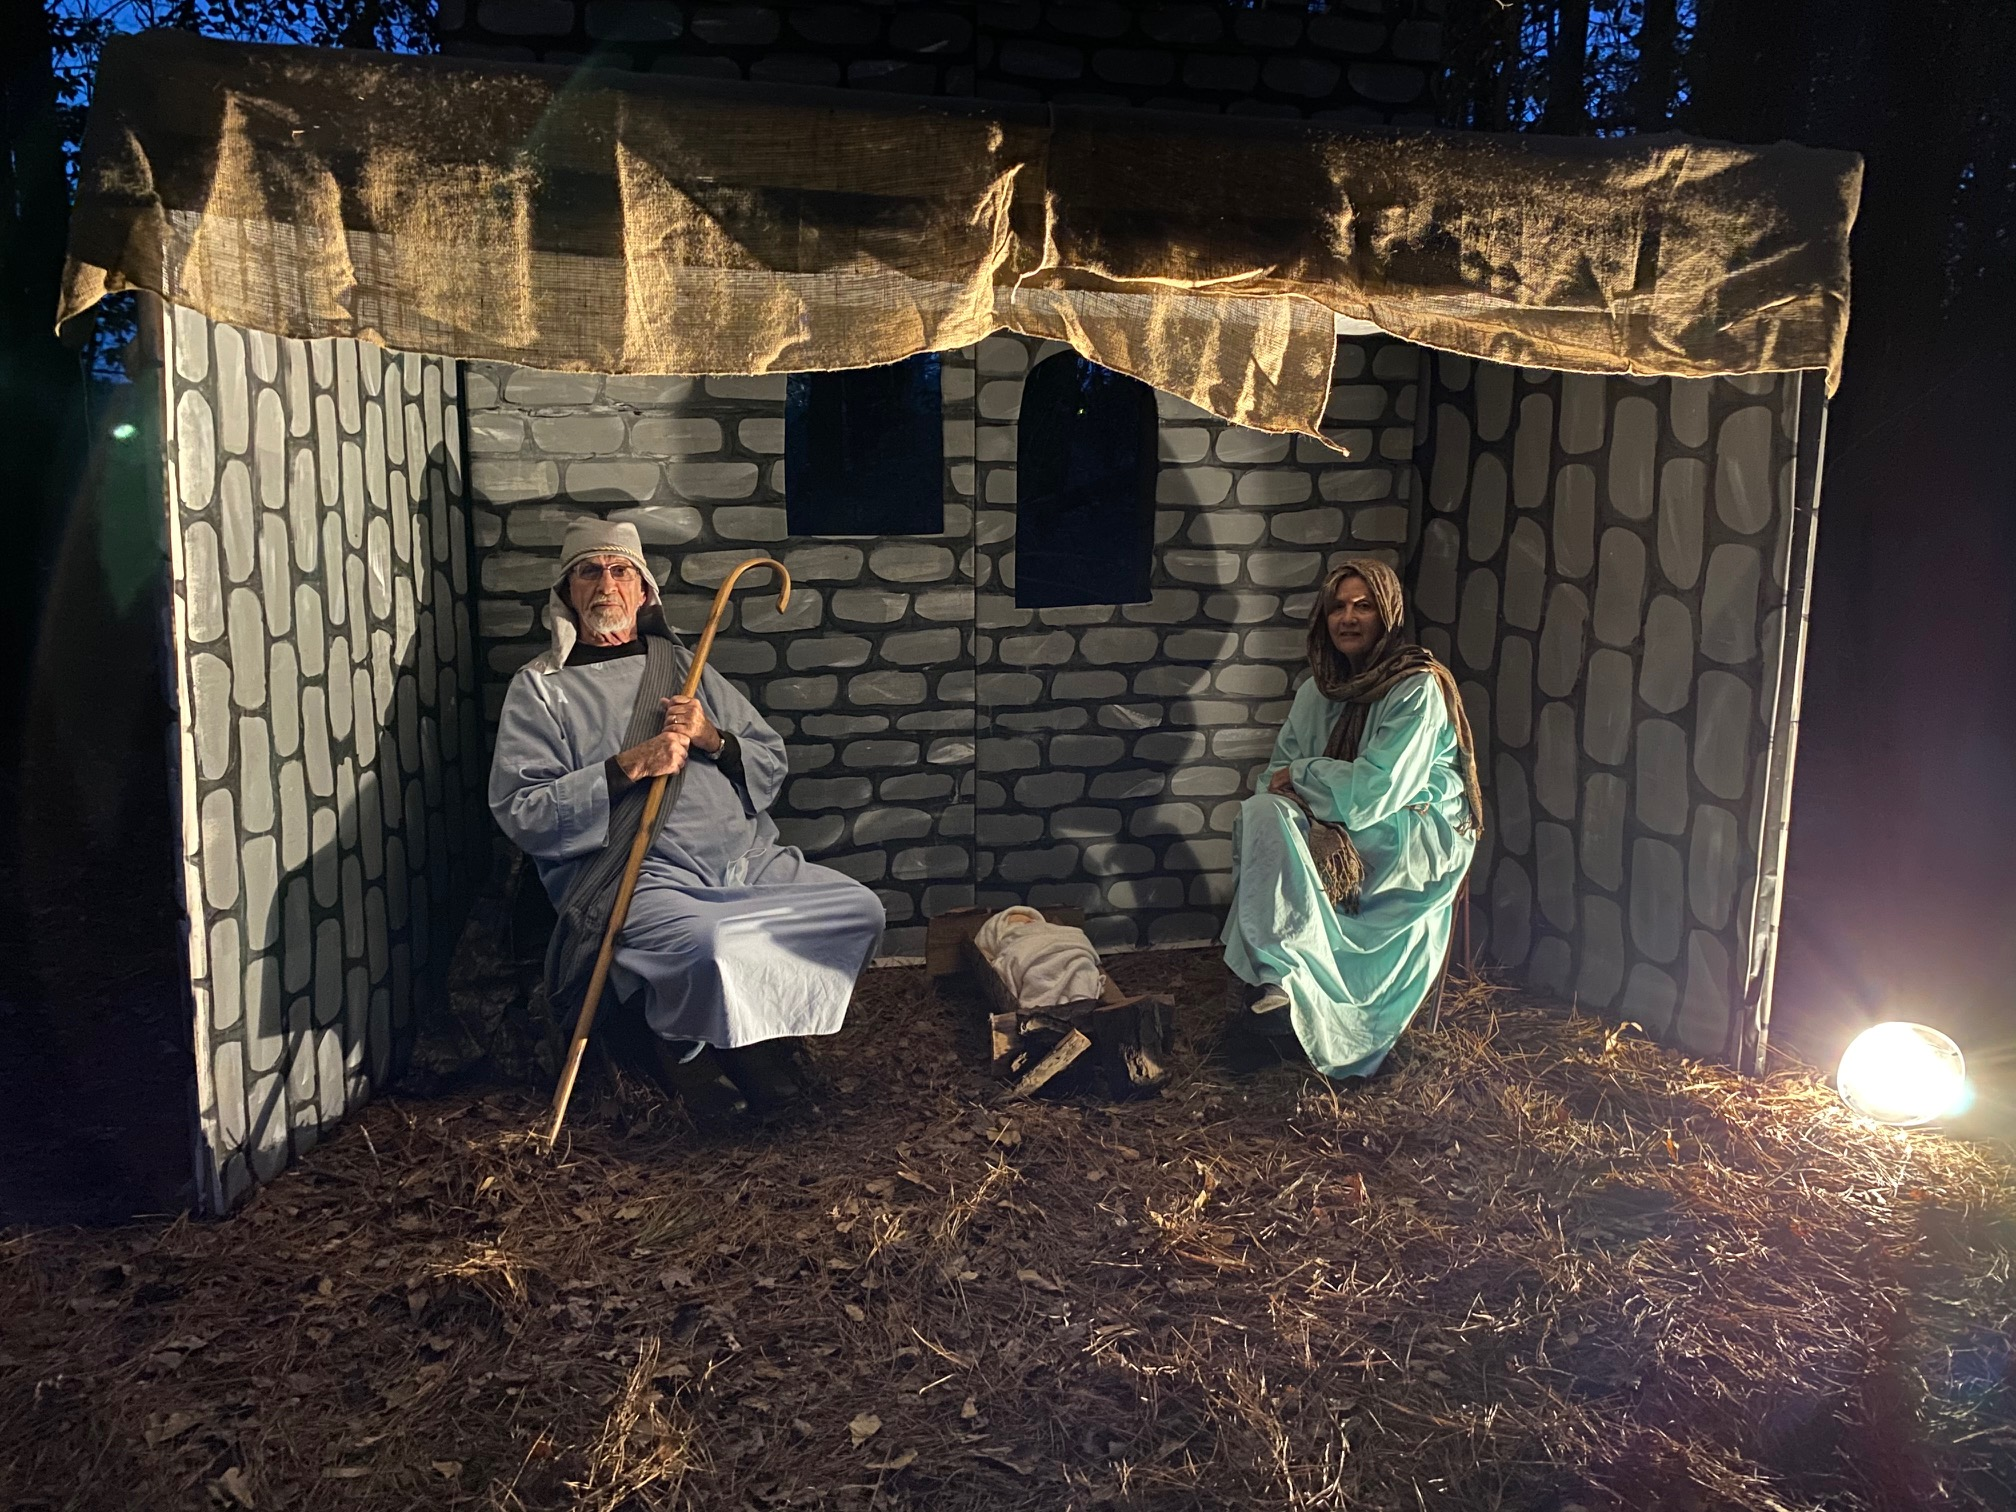 A living nativity scene with Mary and Joseph.